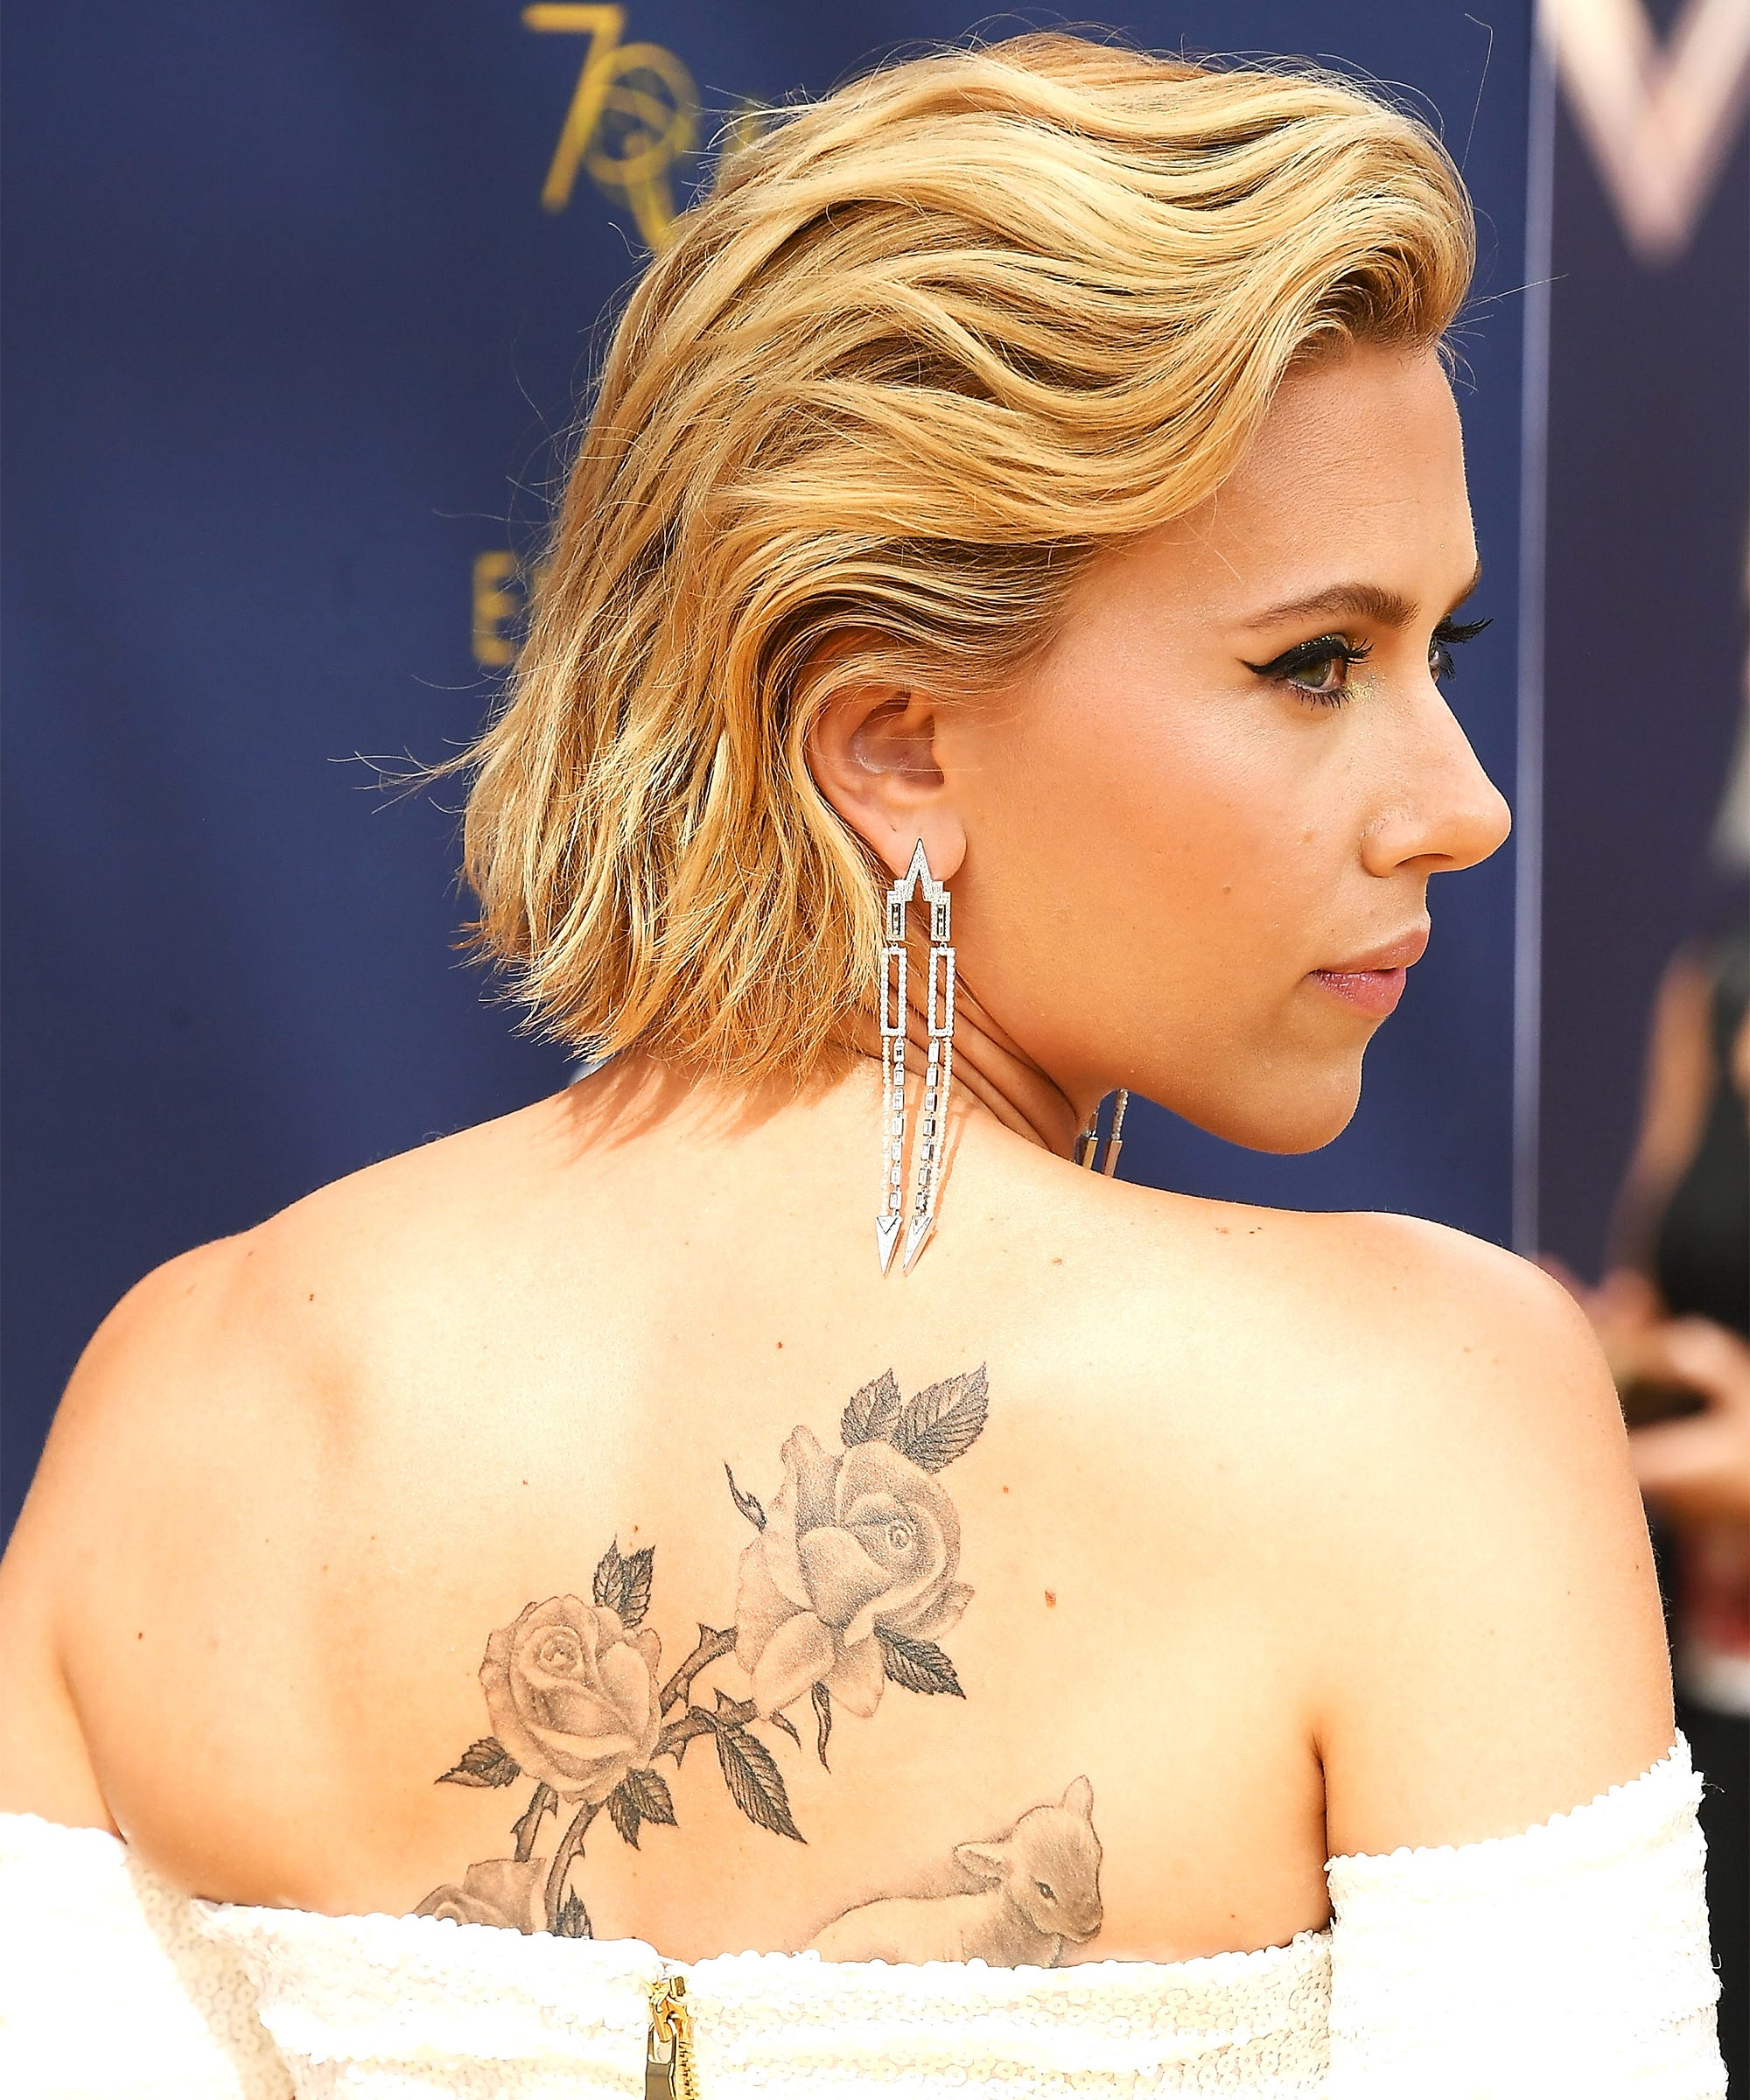 0d2818853 21 Celebrity Tattoos That Made Headlines In 2018